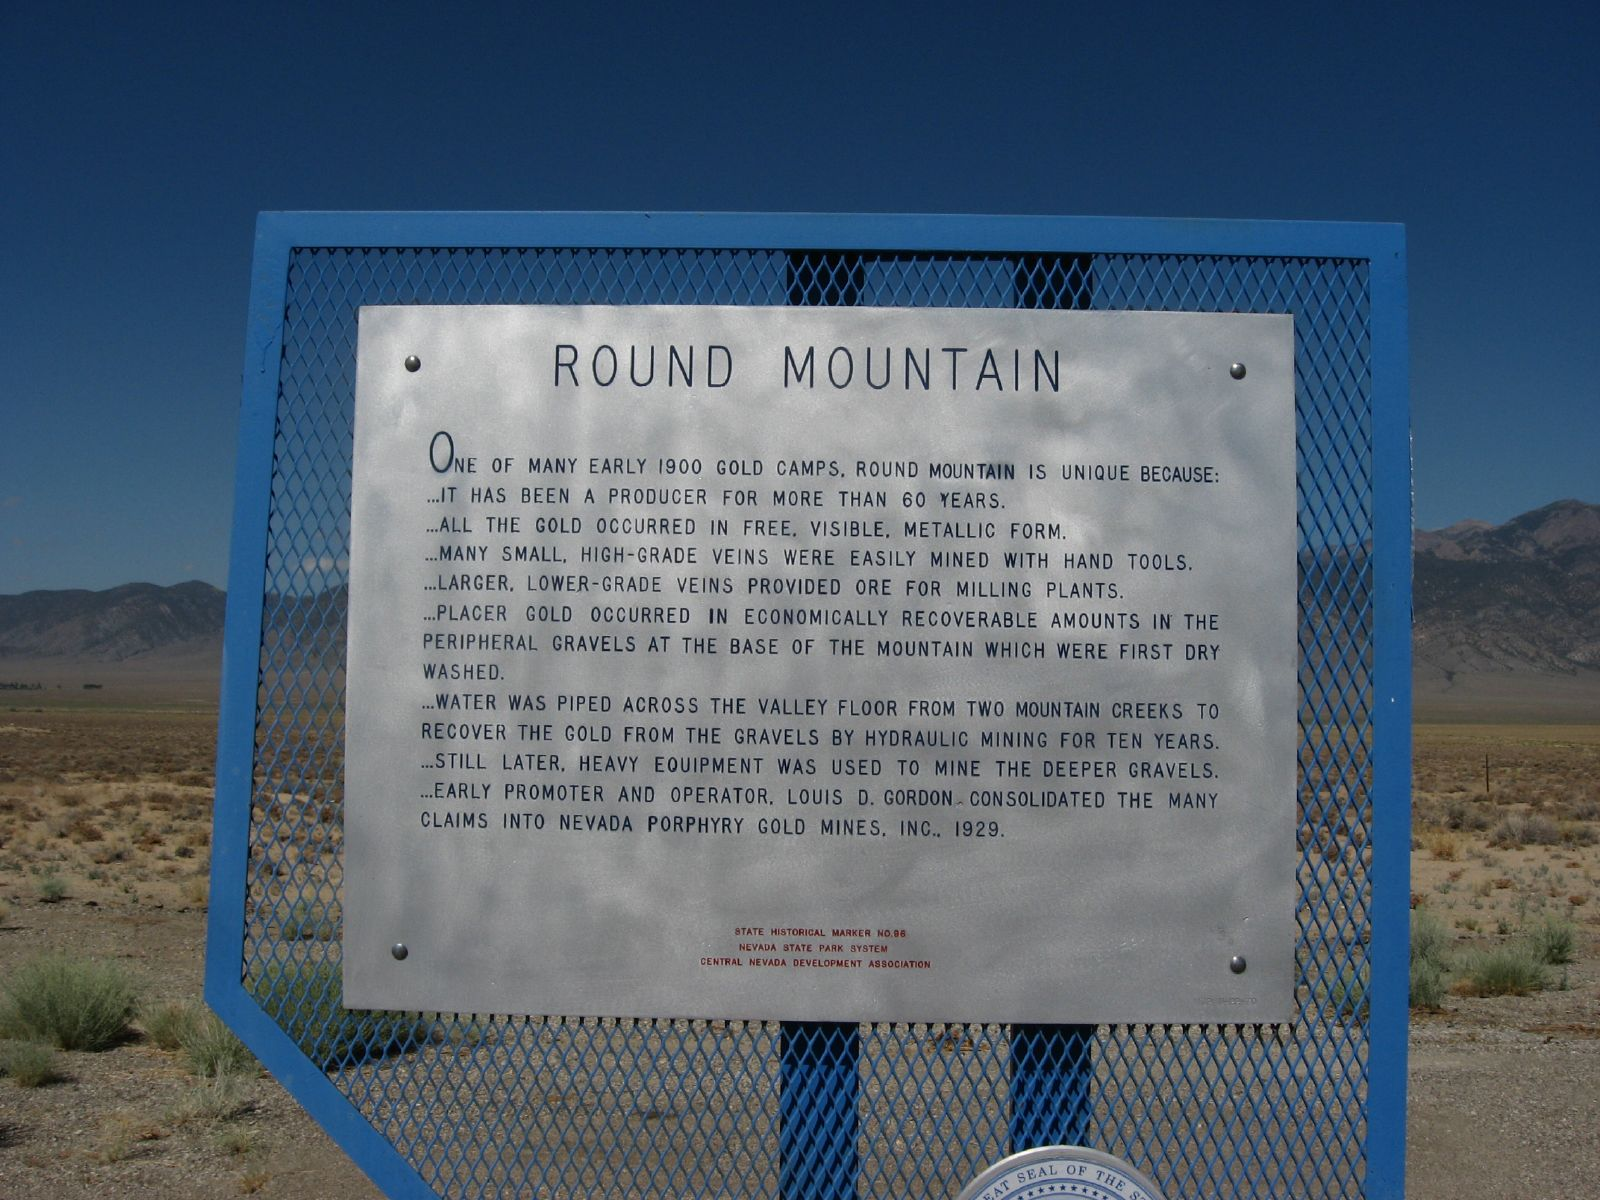 round mountain chat sites Be prepared with the most accurate 10-day forecast for round mountain, nv (89045) with highs, lows, chance of precipitation from the weather channel and weathercom.